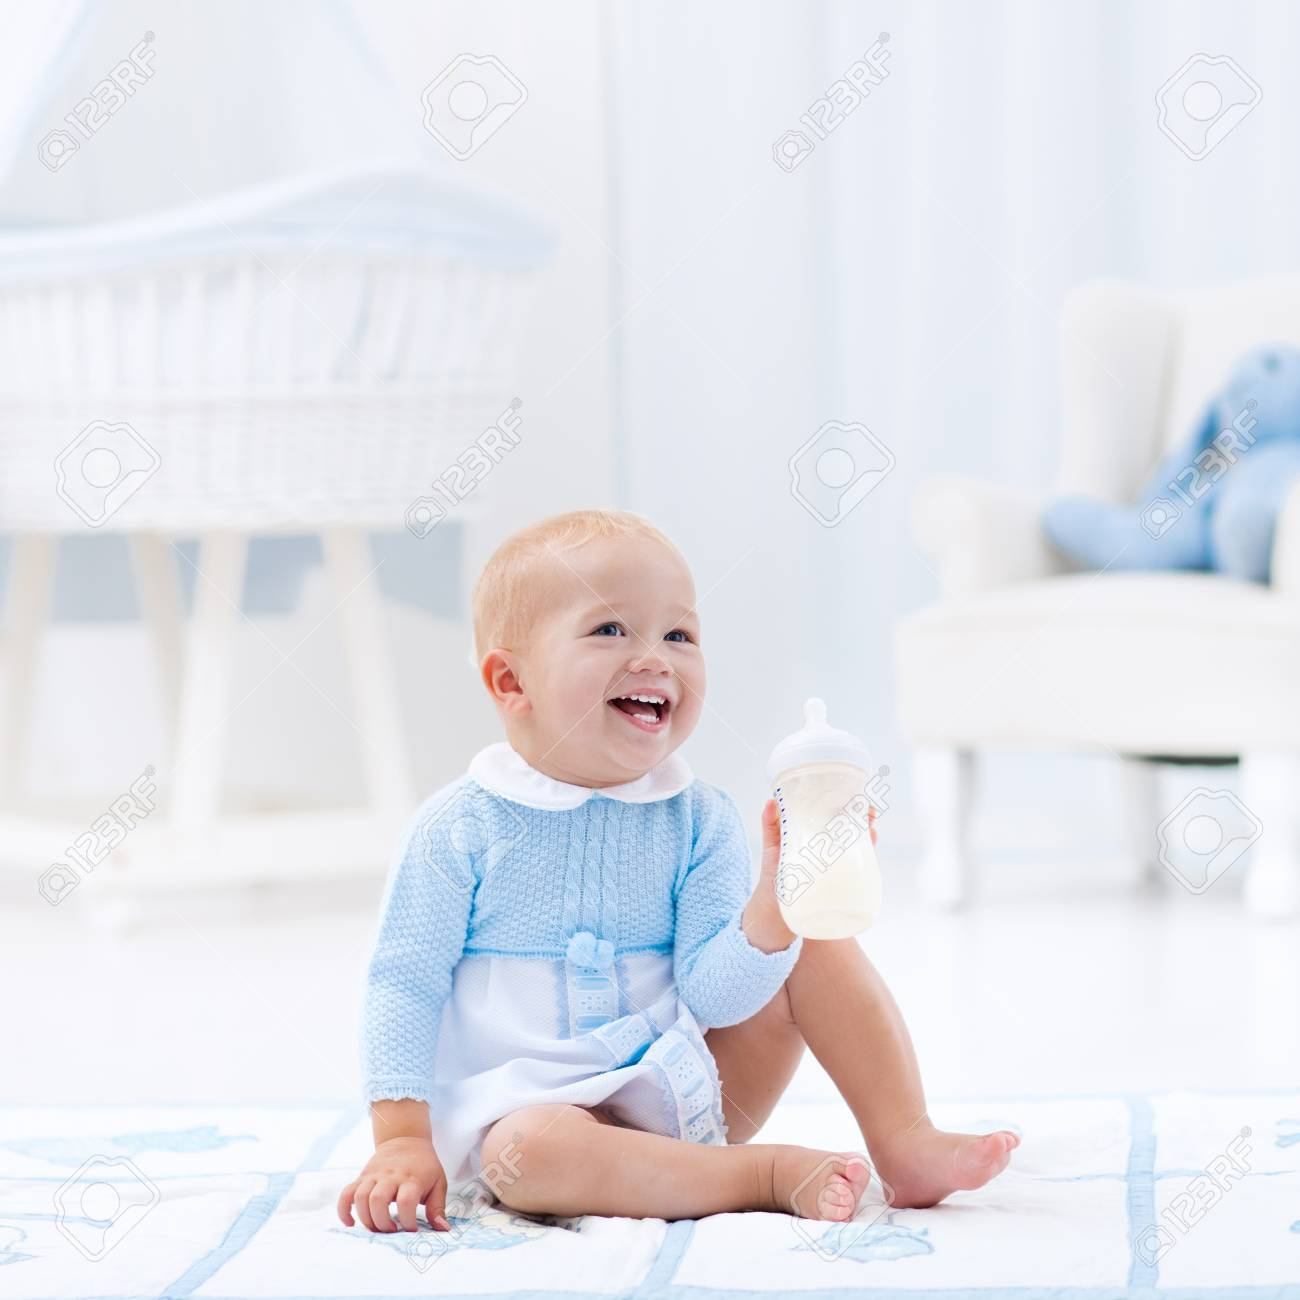 Adorable Baby Boy Playing On A Blue Floor Mat And Drinking Milk